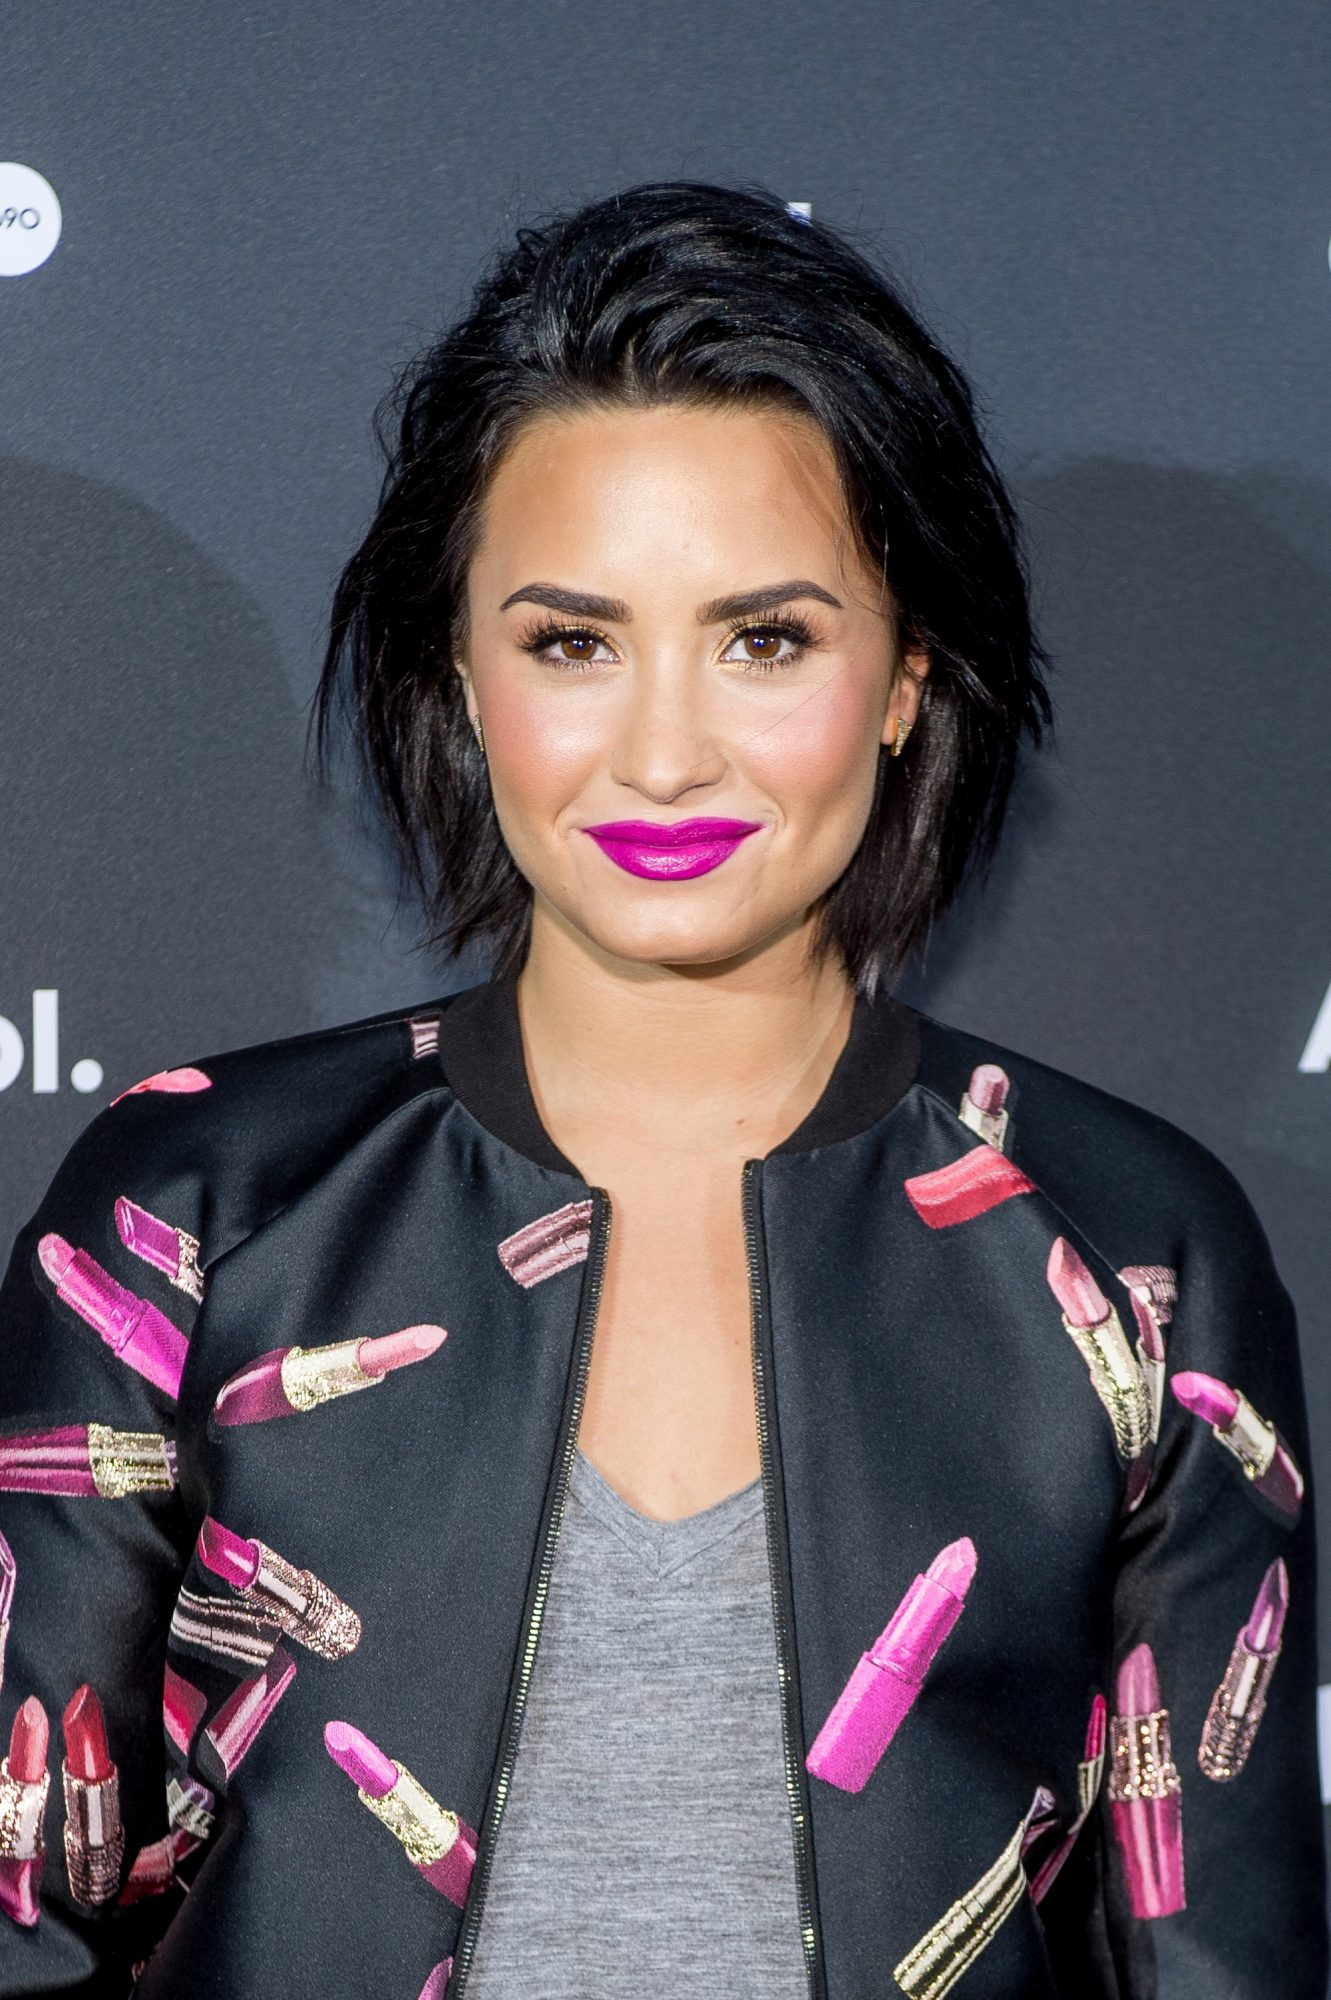 Singer Demi Lovato attends AOL Newfront on May 3, 2016 in New York City.